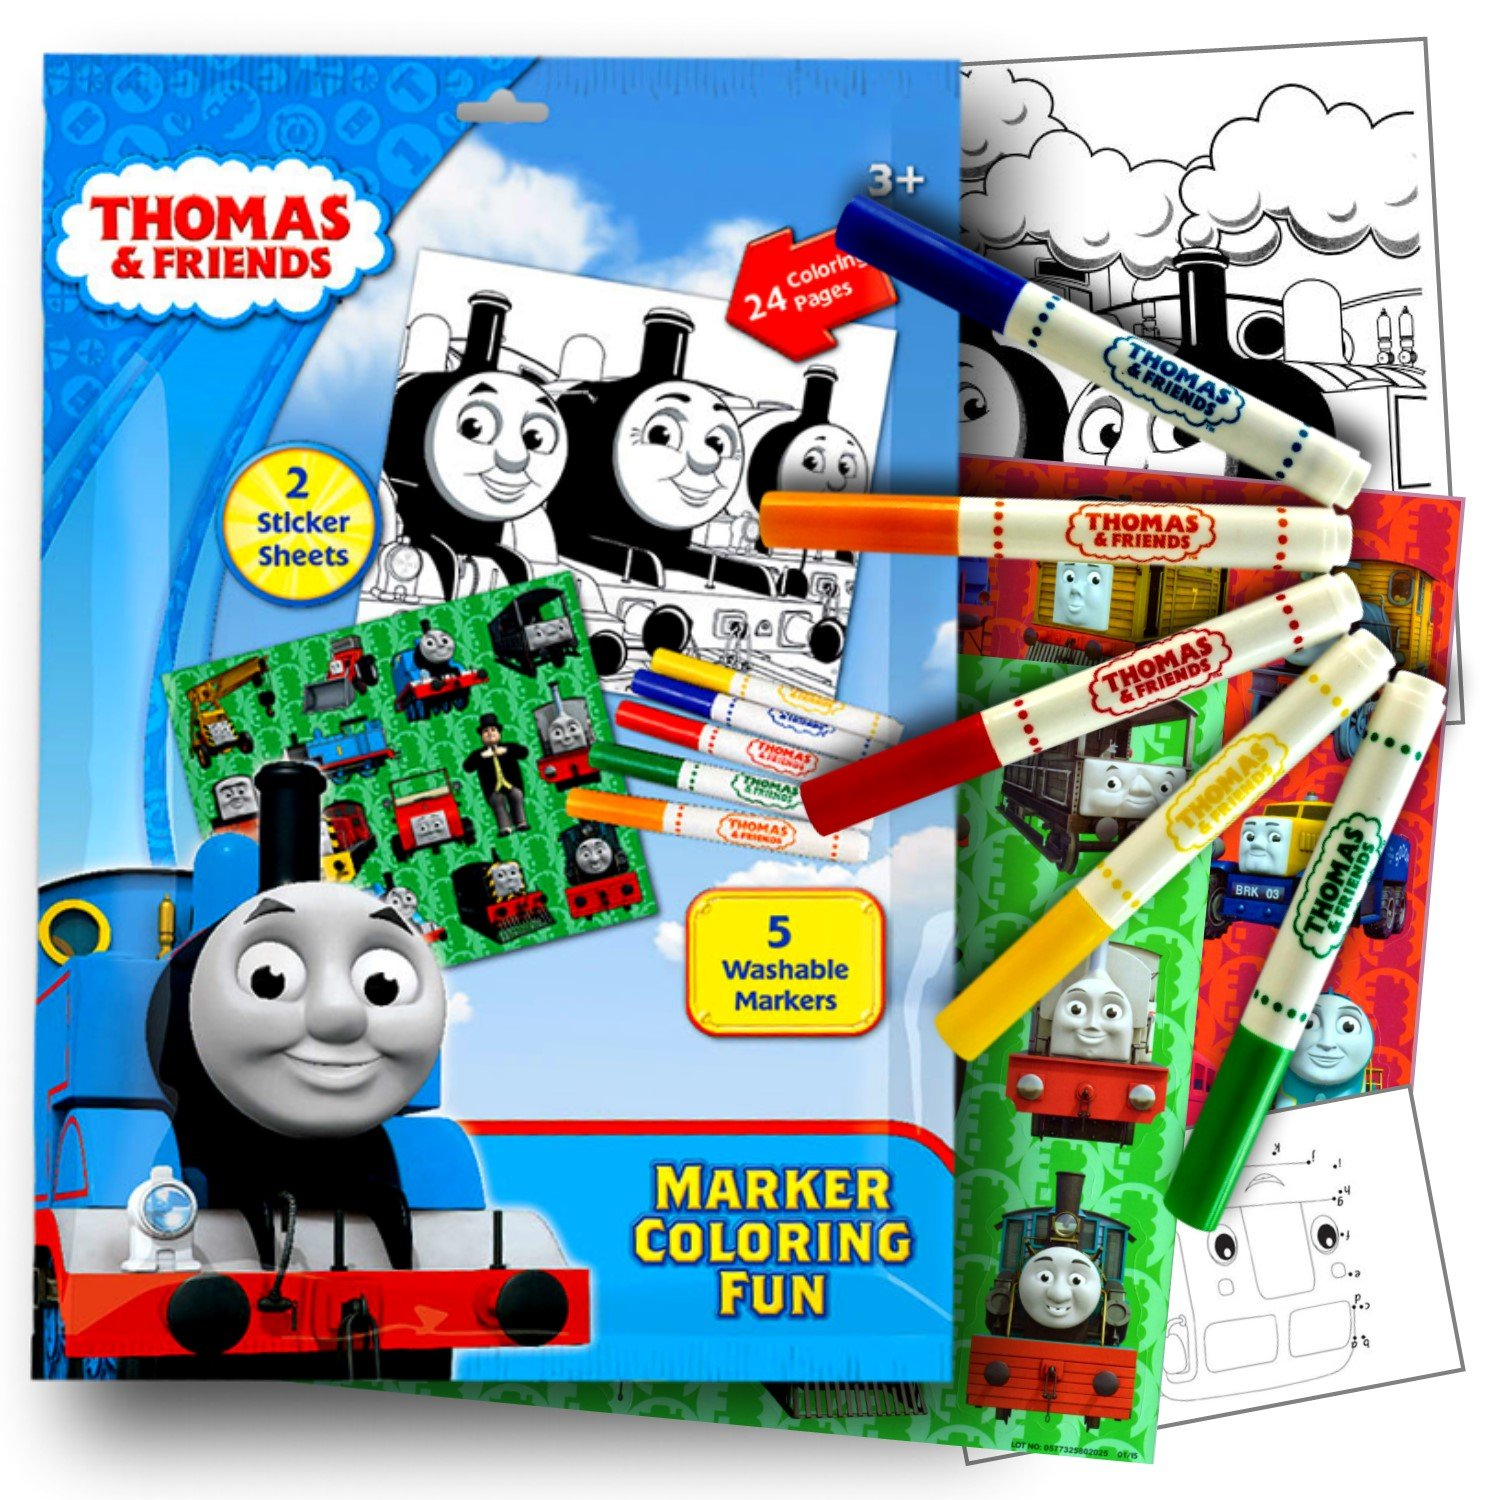 Washable Markers Sticker Sheets and Coloring Pages Thomas the Tank Engine Thomas the Train Stickers Coloring Activity Set With